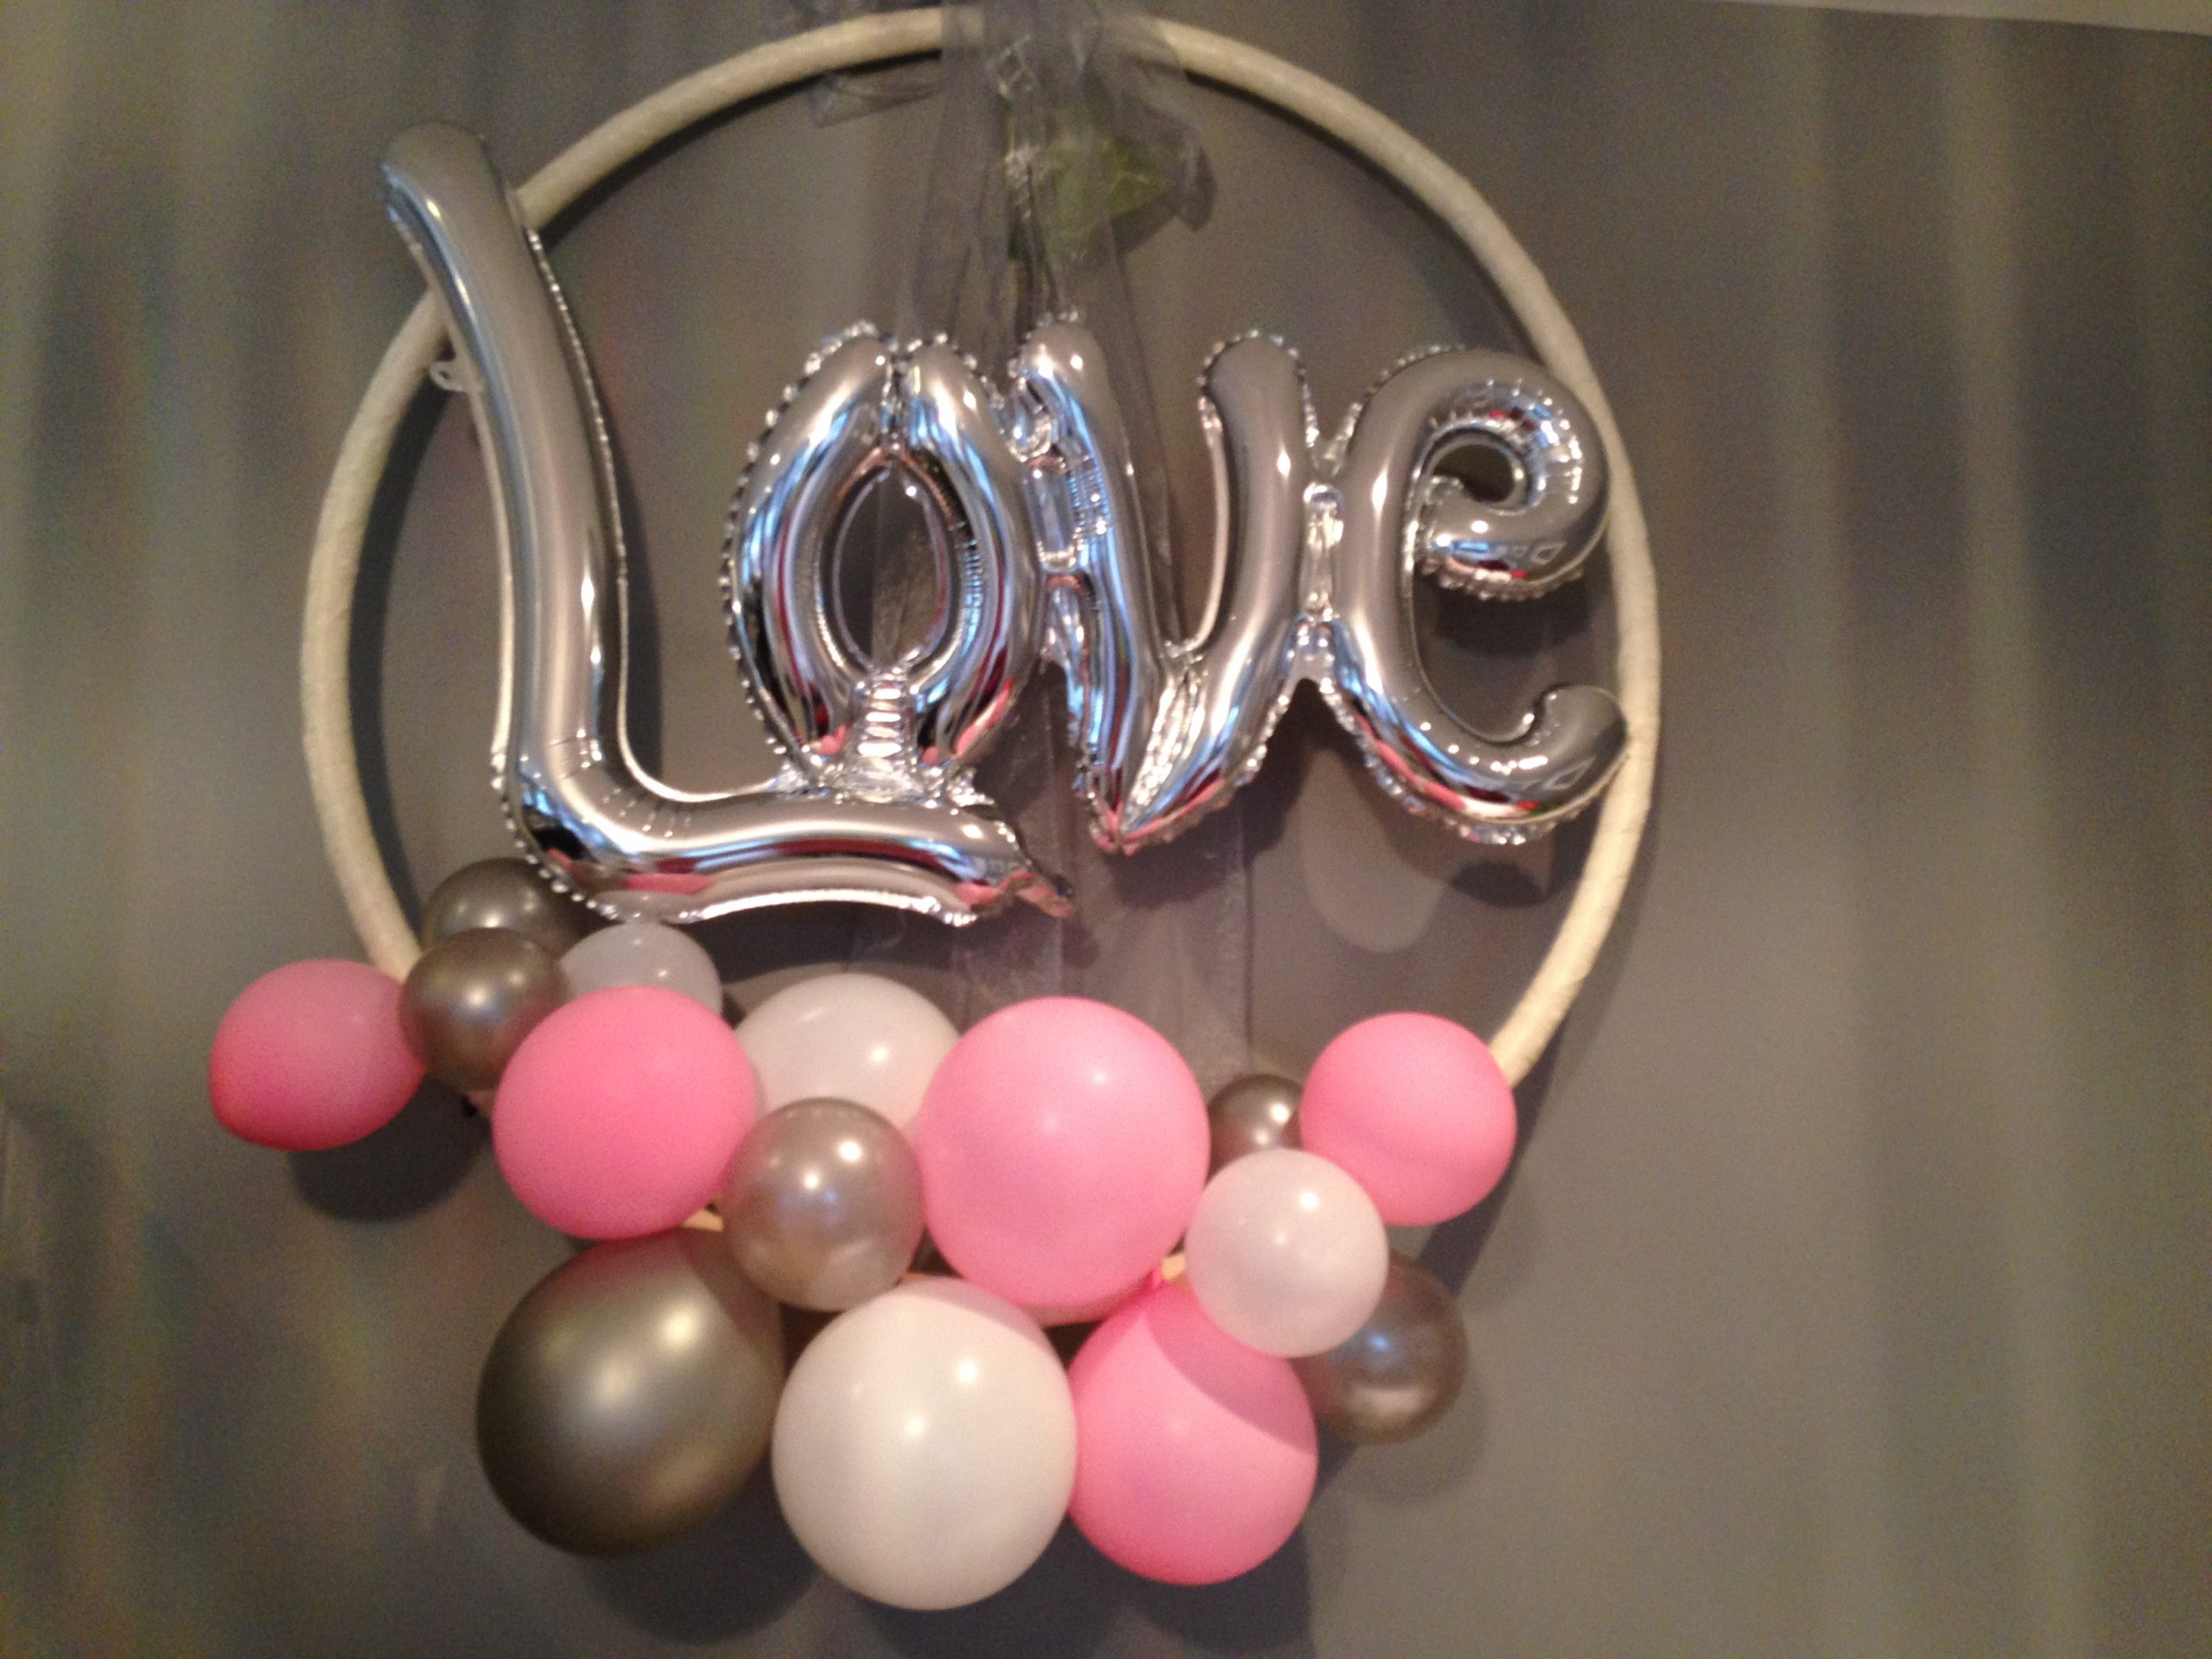 Love balloons helium filled